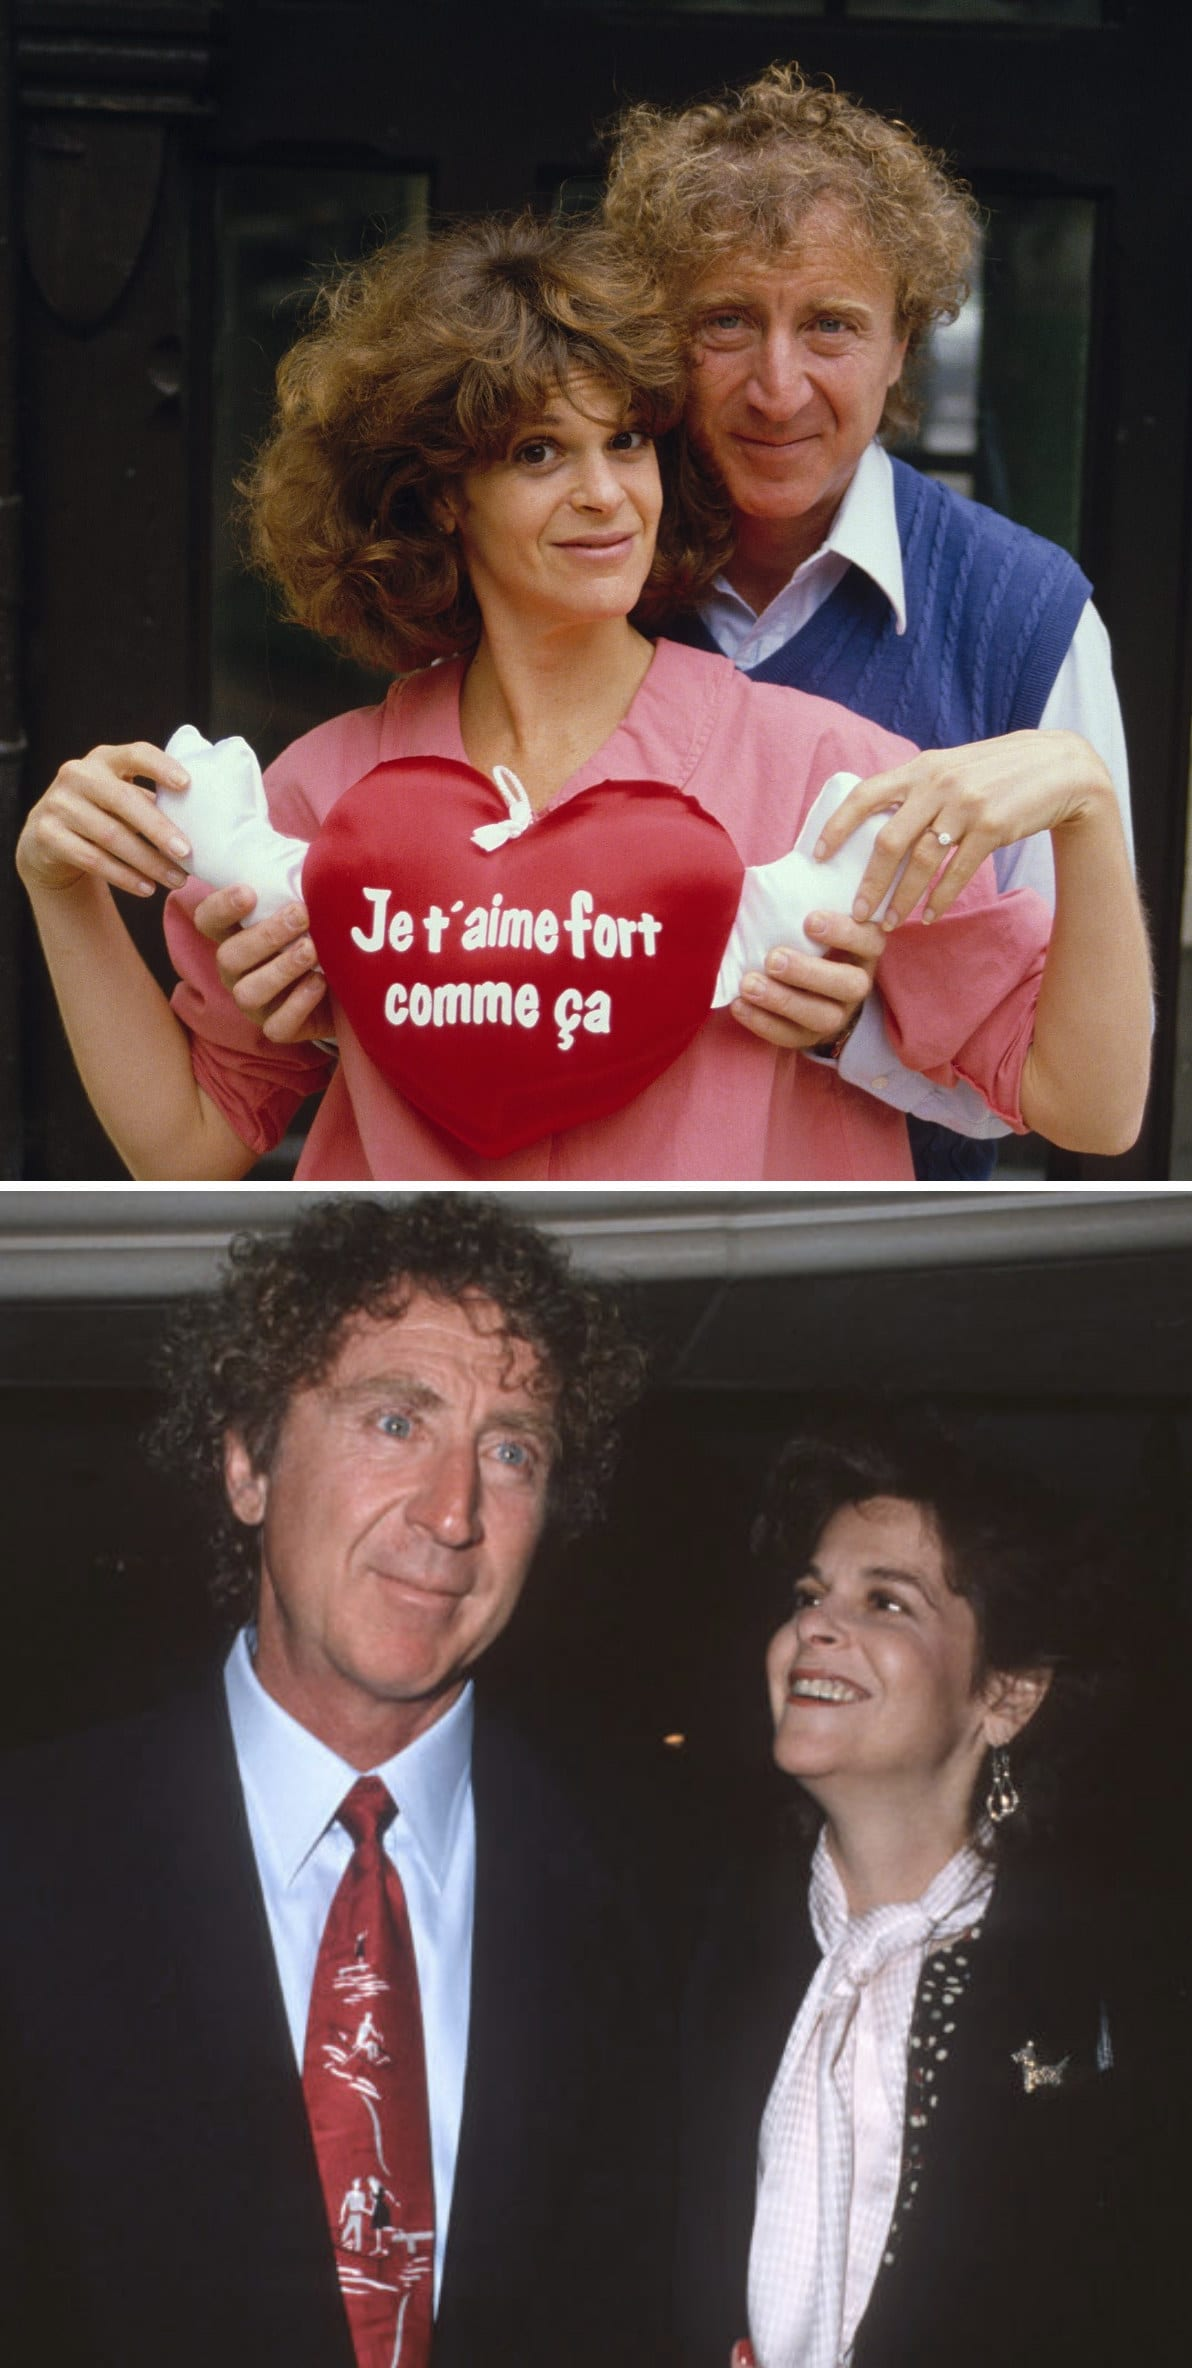 Wilder and Radner posing with a heart-shaped pillow at an event in 1984; Wilder and Radner at a wellness center benefit in 1989